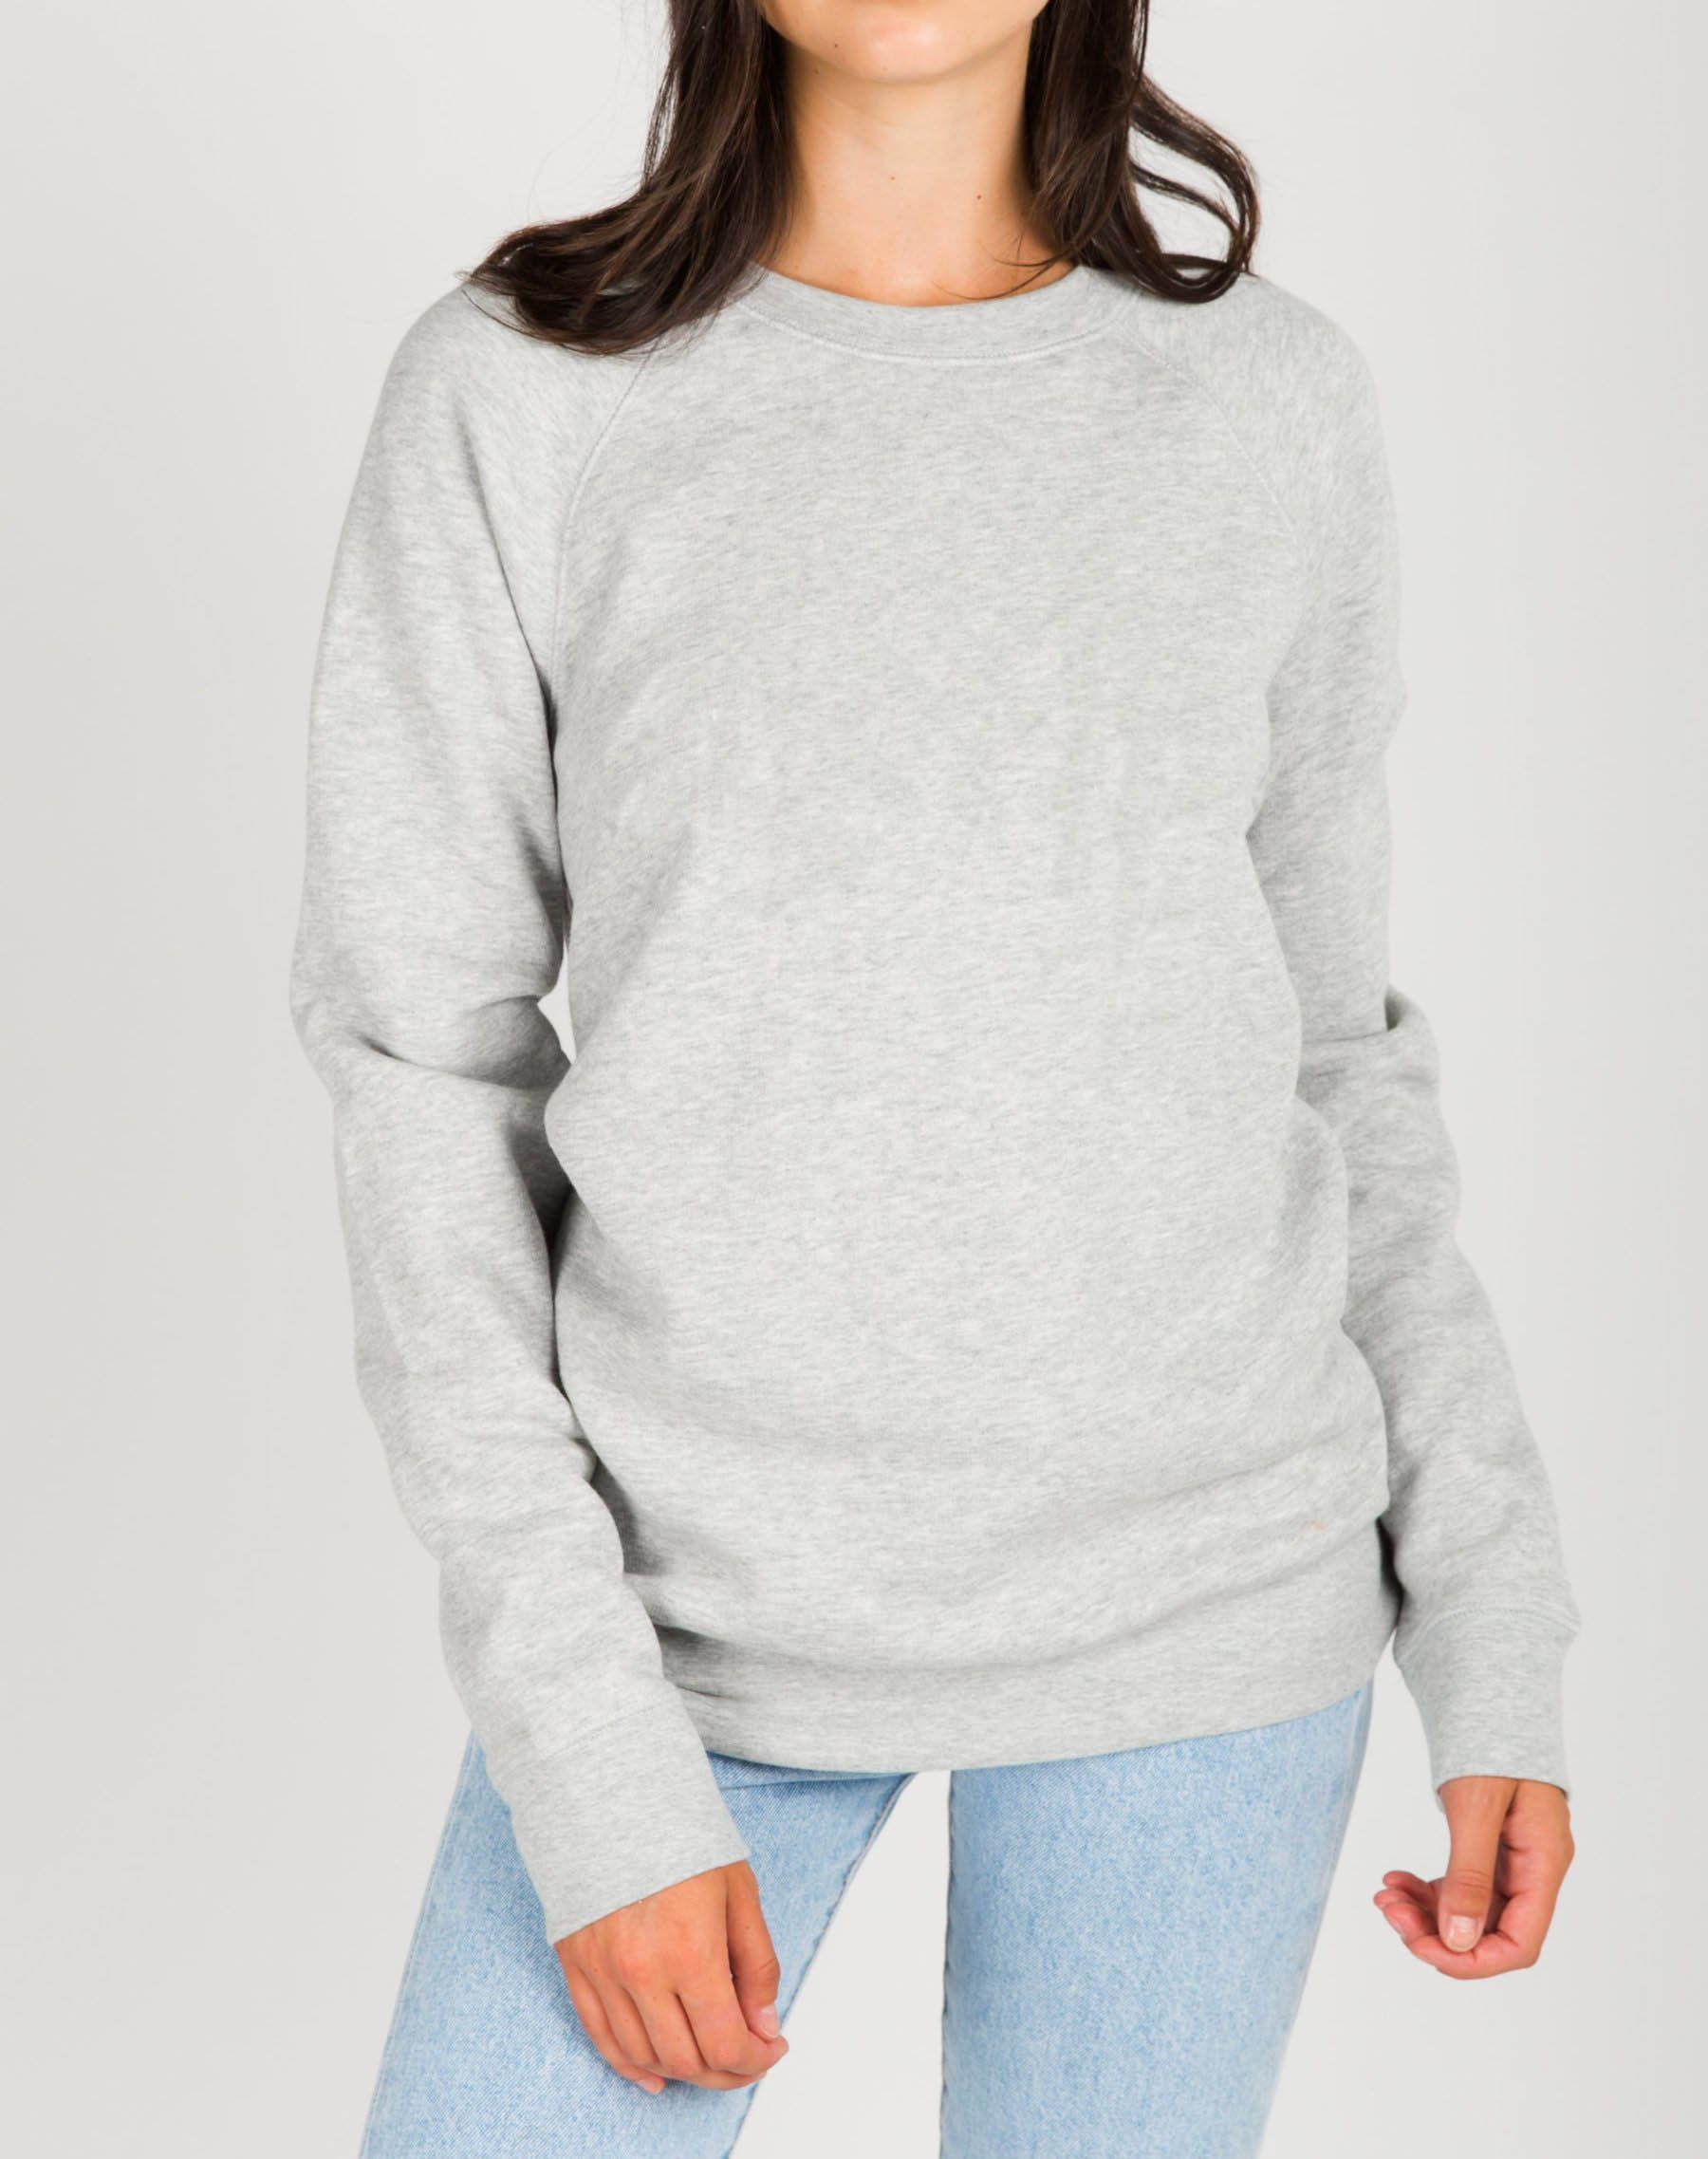 Brunette the Label Crew Neck